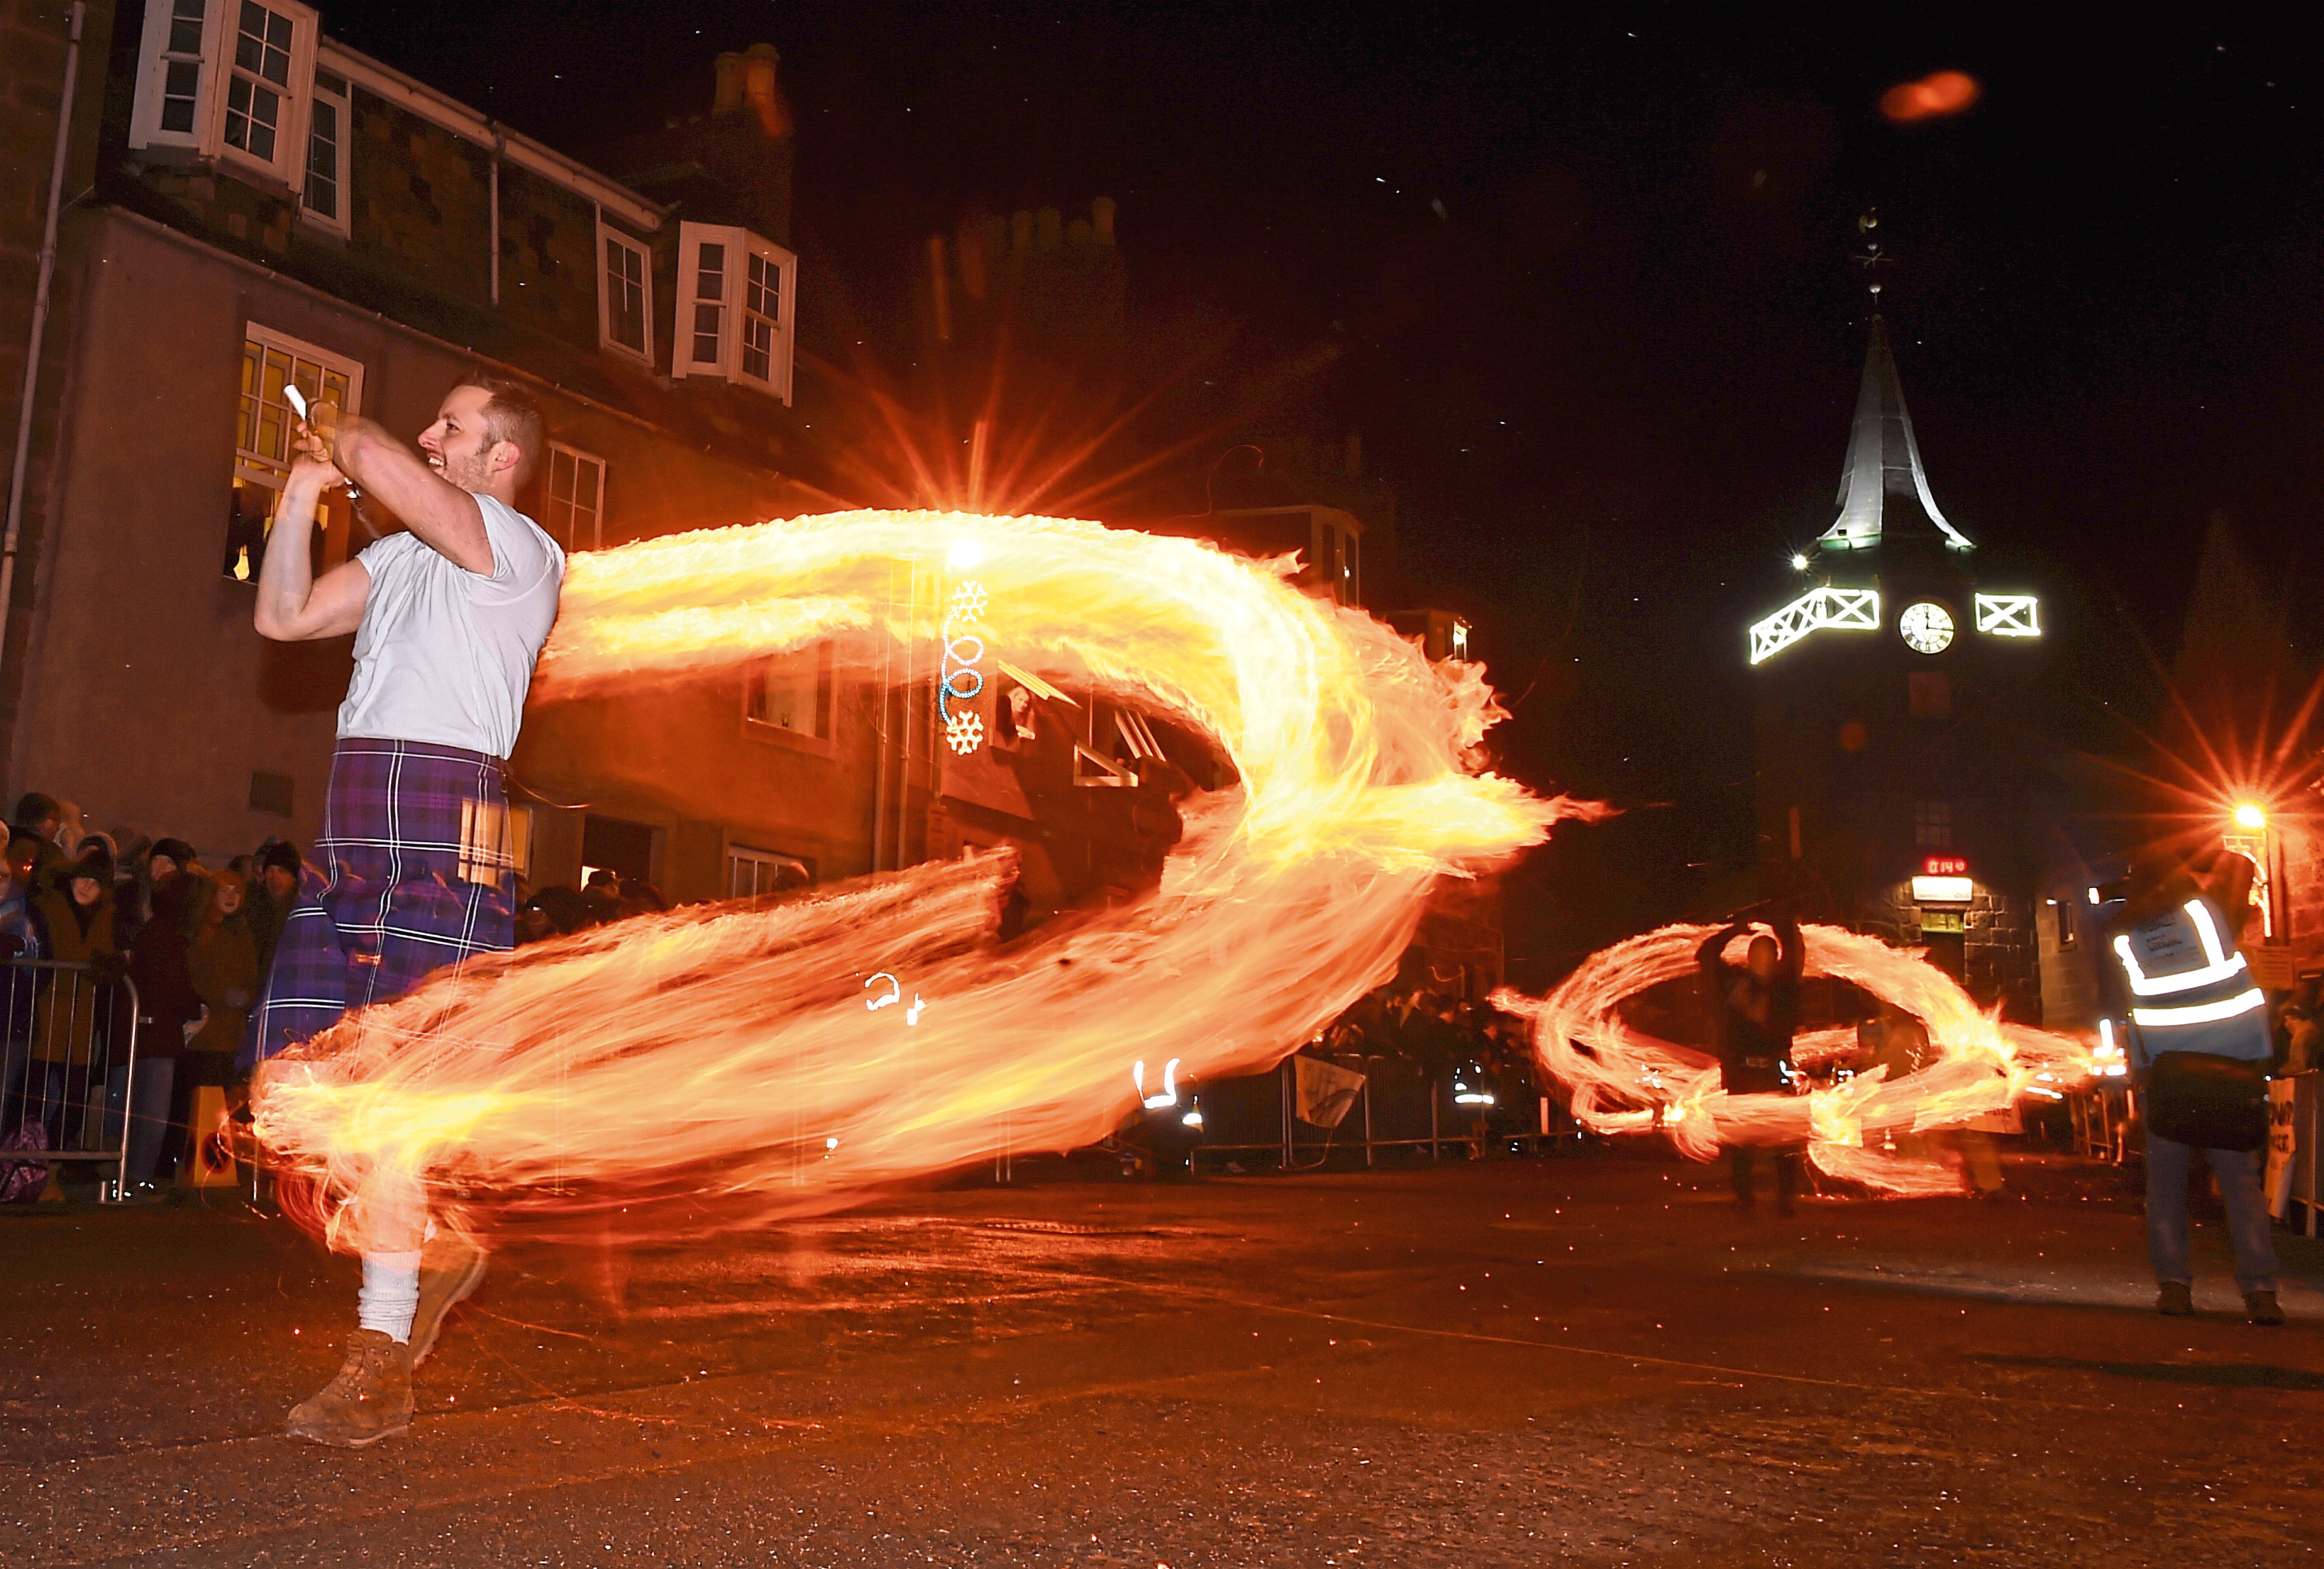 The Stonehaven fireballs event is a popular event in the north-east each Hogmanay